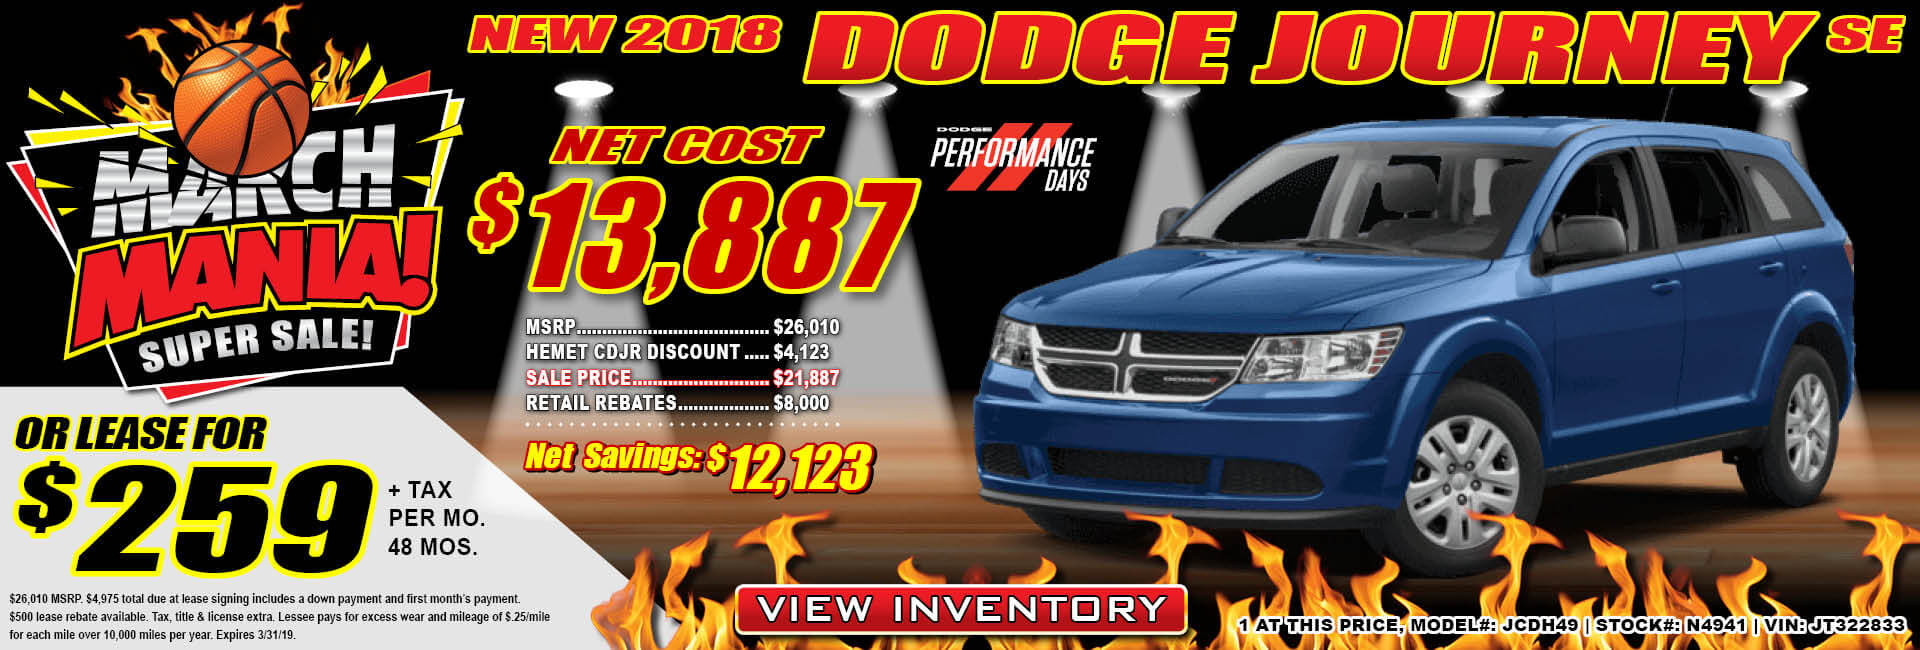 Dodge Journey $259 Lease